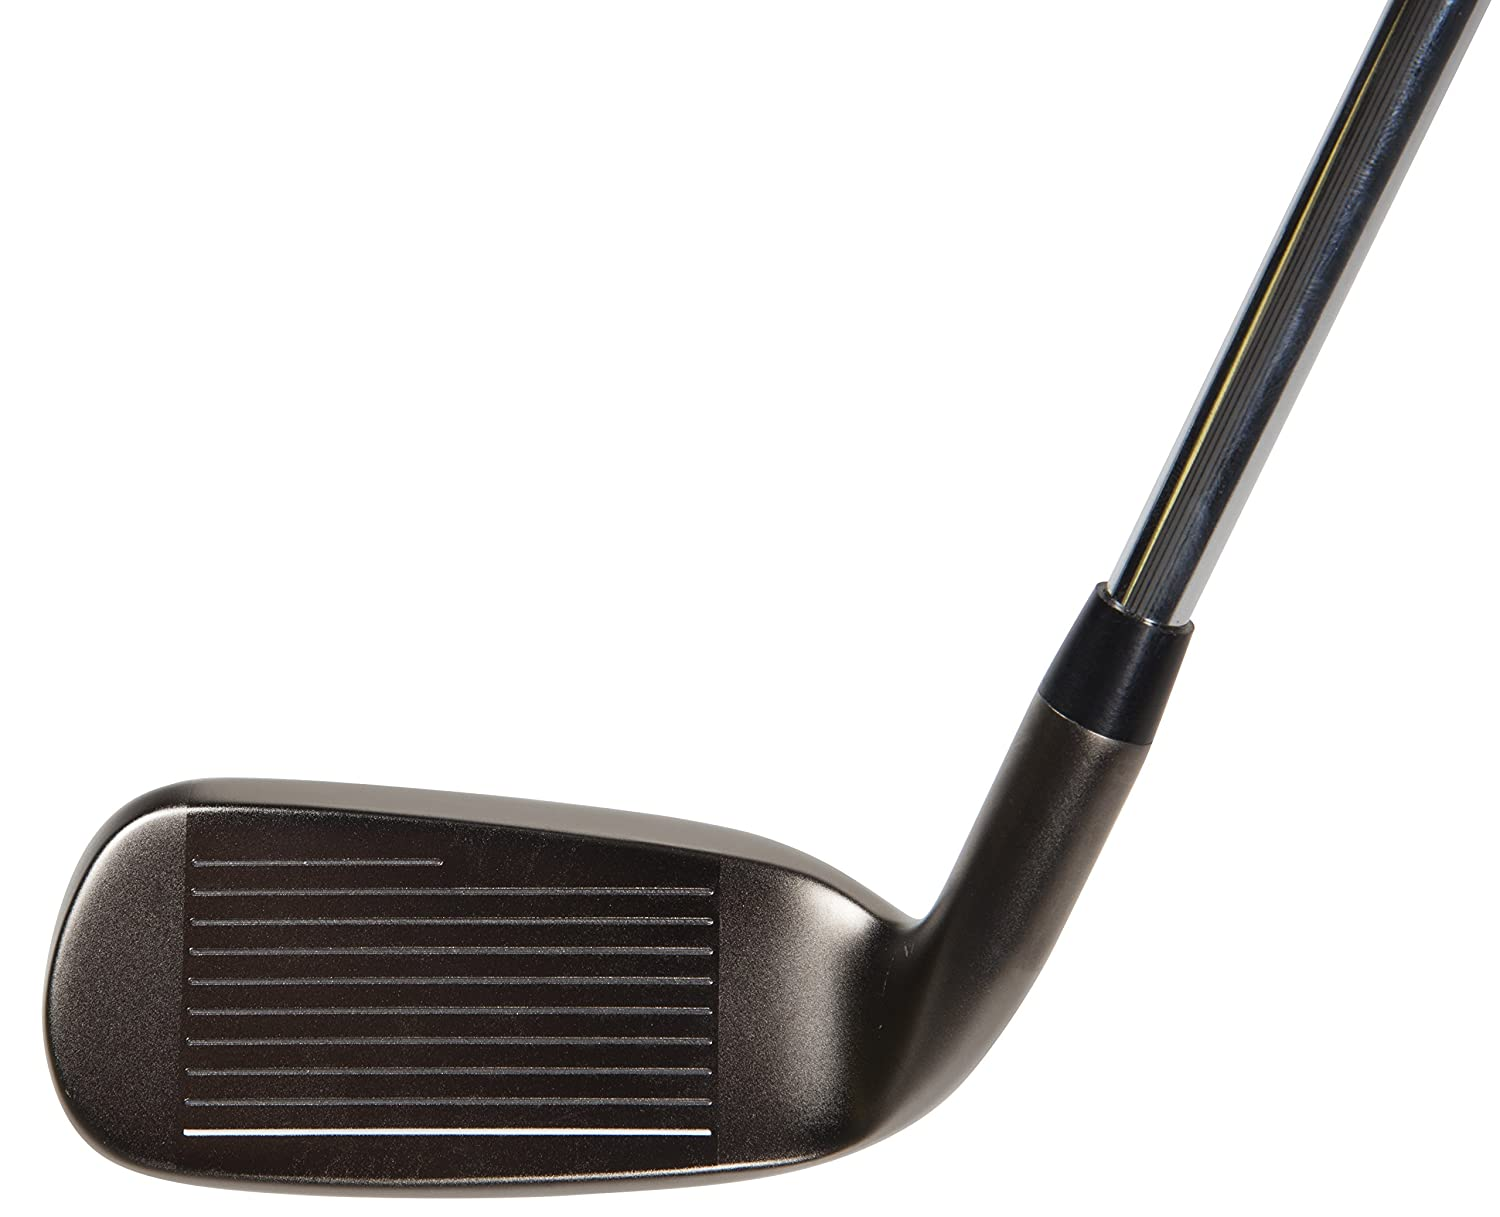 Excel EGI Chipper de Golf Pinemeadow, Mano Derecha, Acero ...